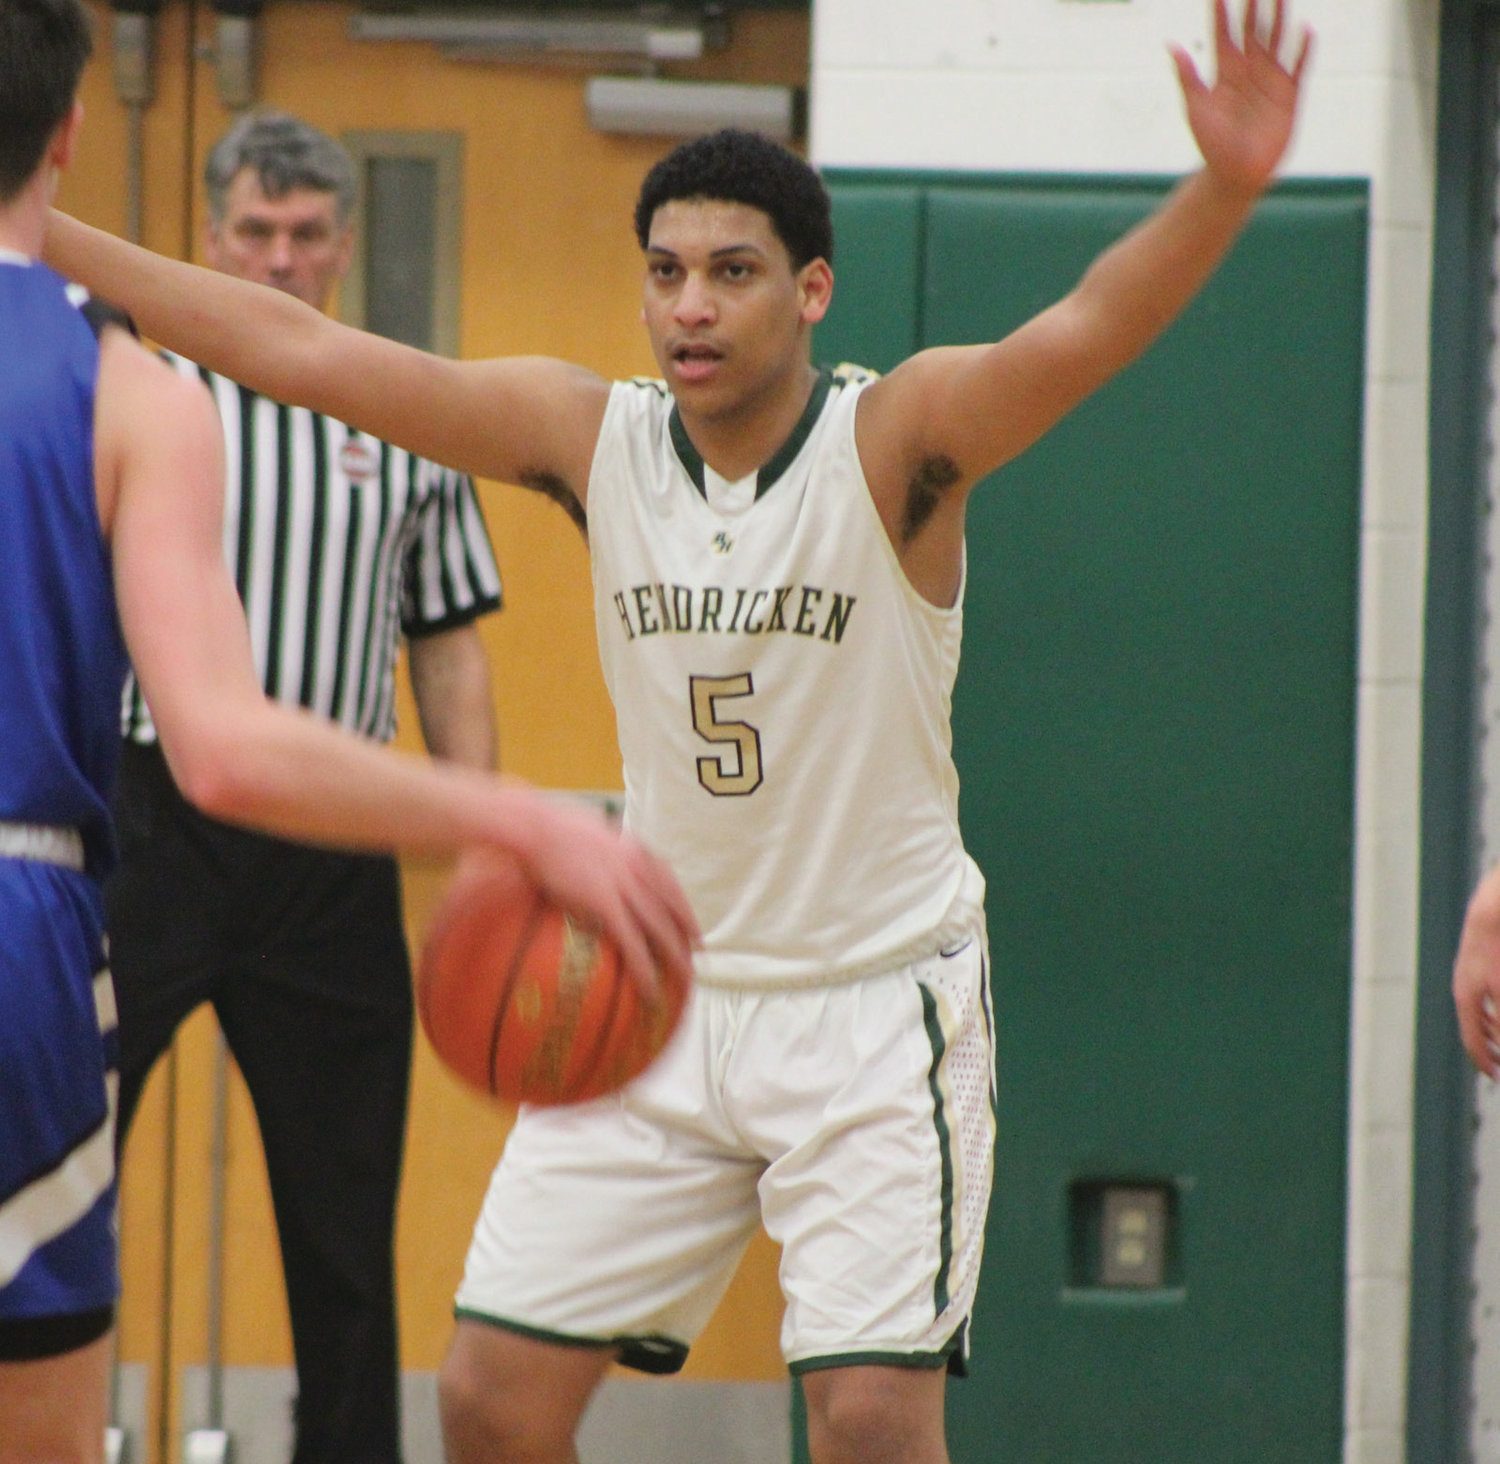 PLAYOFF BASKETBALL: Bishop Hendricken's      Sebastian Basilio defends a Cumberland player in the first round of the open state tournament at Cranston East last week.